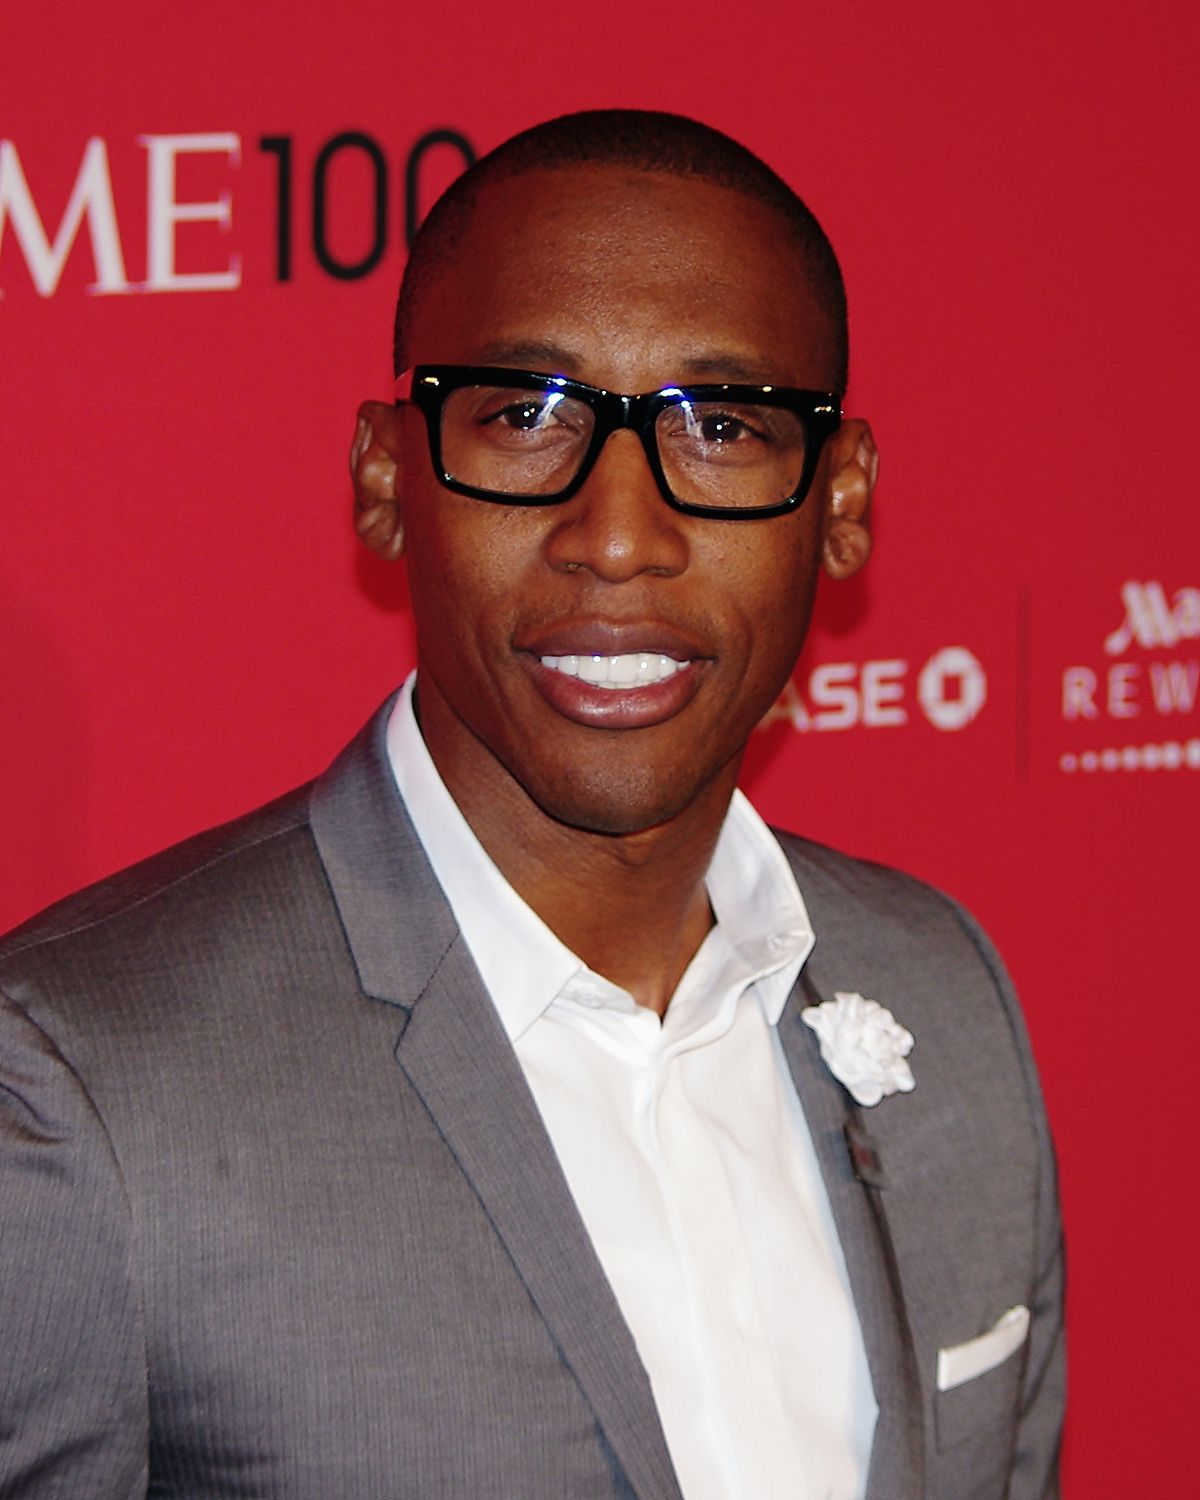 The 52-year old son of father (?) and mother(?) Raphael Saadiq in 2018 photo. Raphael Saadiq earned a  million dollar salary - leaving the net worth at 16 million in 2018